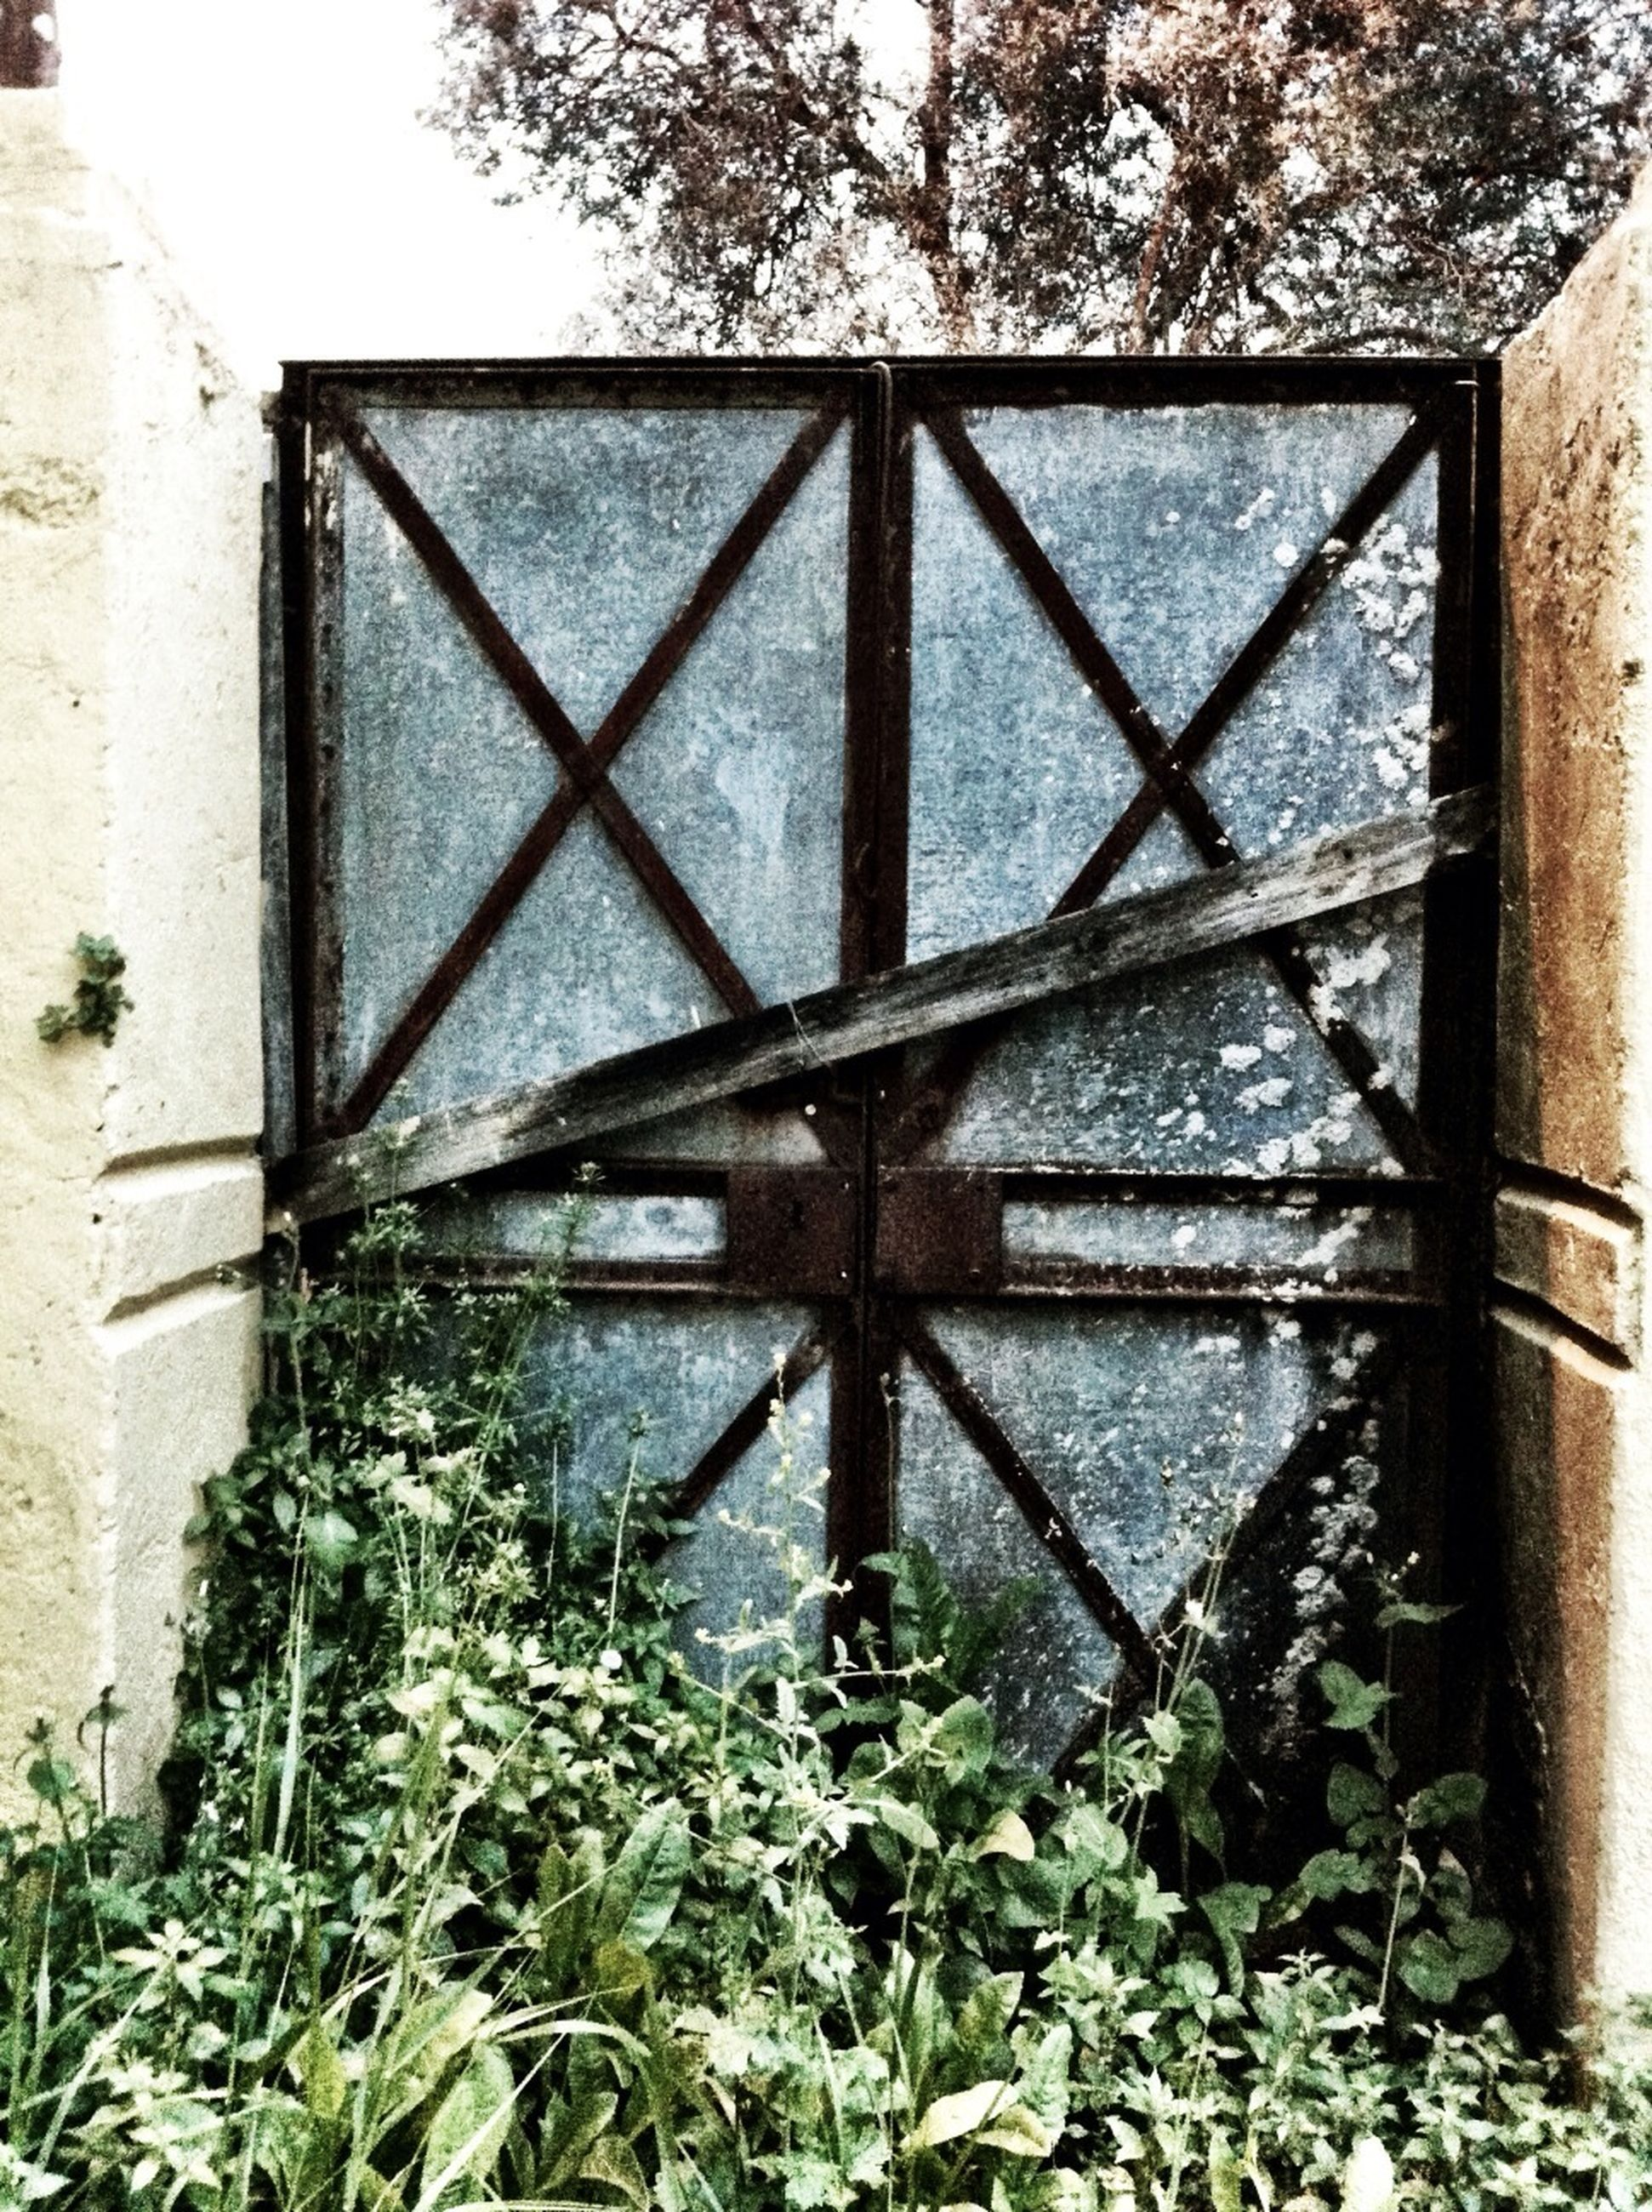 built structure, architecture, metal, plant, protection, building exterior, safety, fence, security, growth, old, day, rusty, weathered, wall - building feature, metallic, abandoned, close-up, outdoors, no people